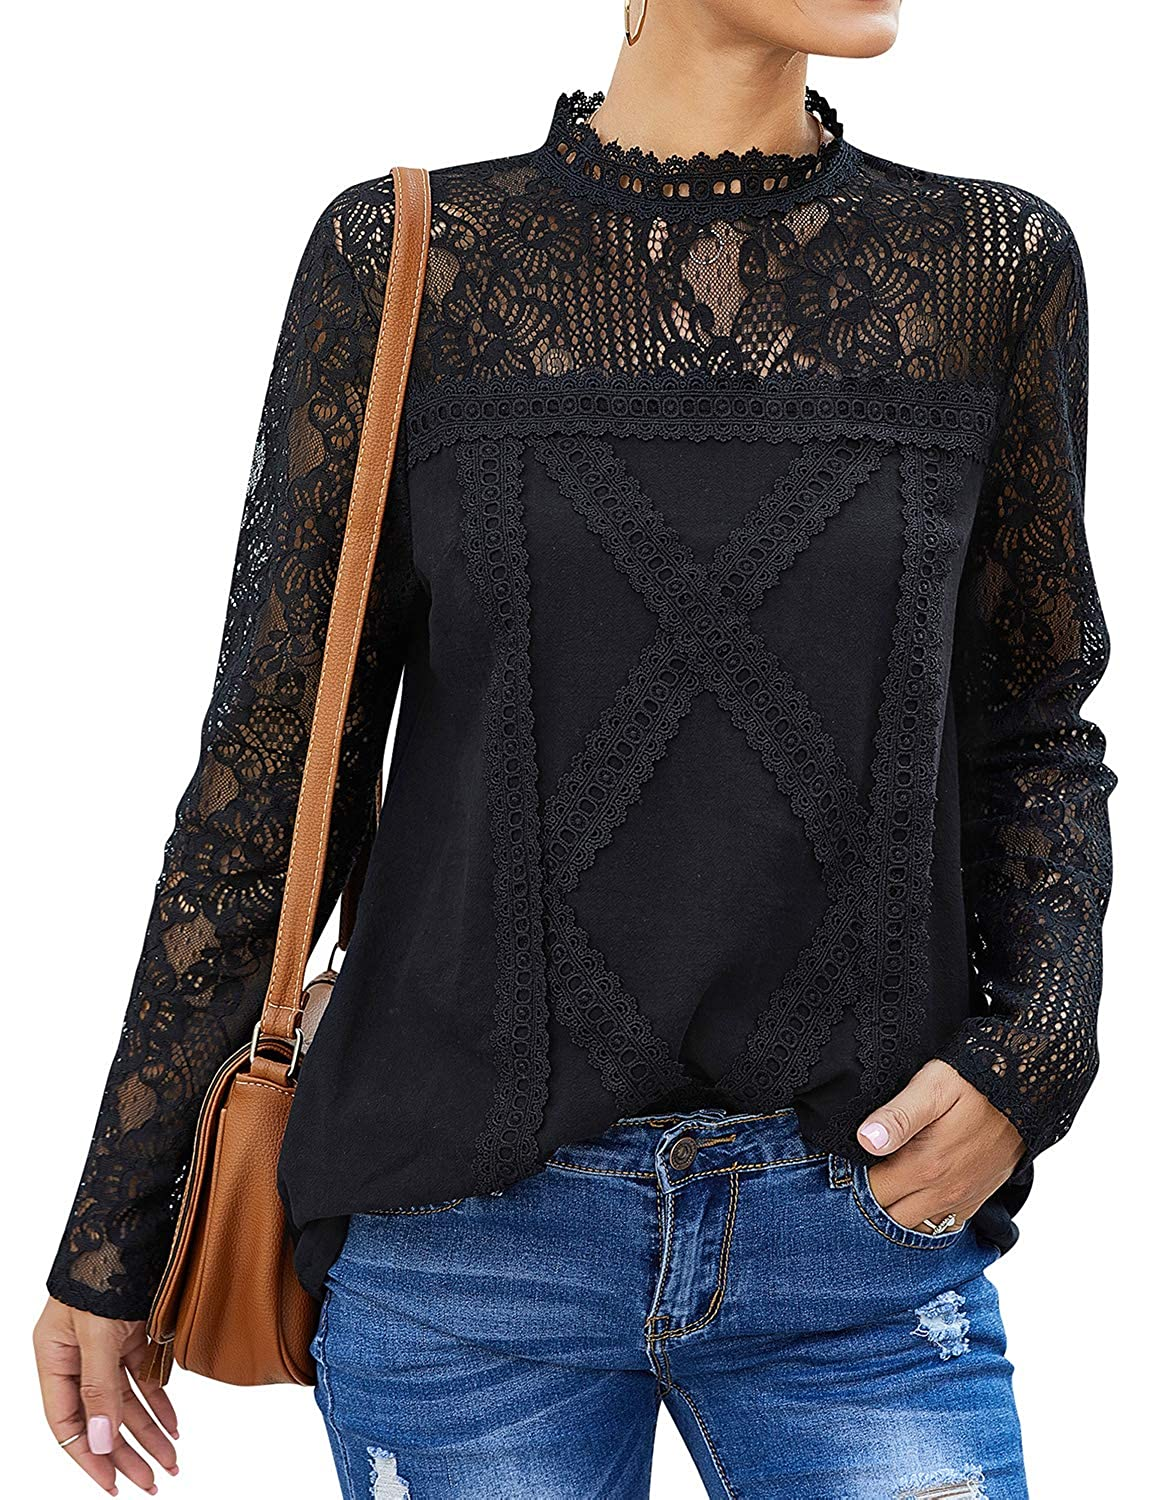 Steampunk Tops | Blouses, Shirts ZXZY Women Cute Lace Blouse Top Short Sleeve Lace Hollow Out Turtle Neck T Shirt $18.99 AT vintagedancer.com